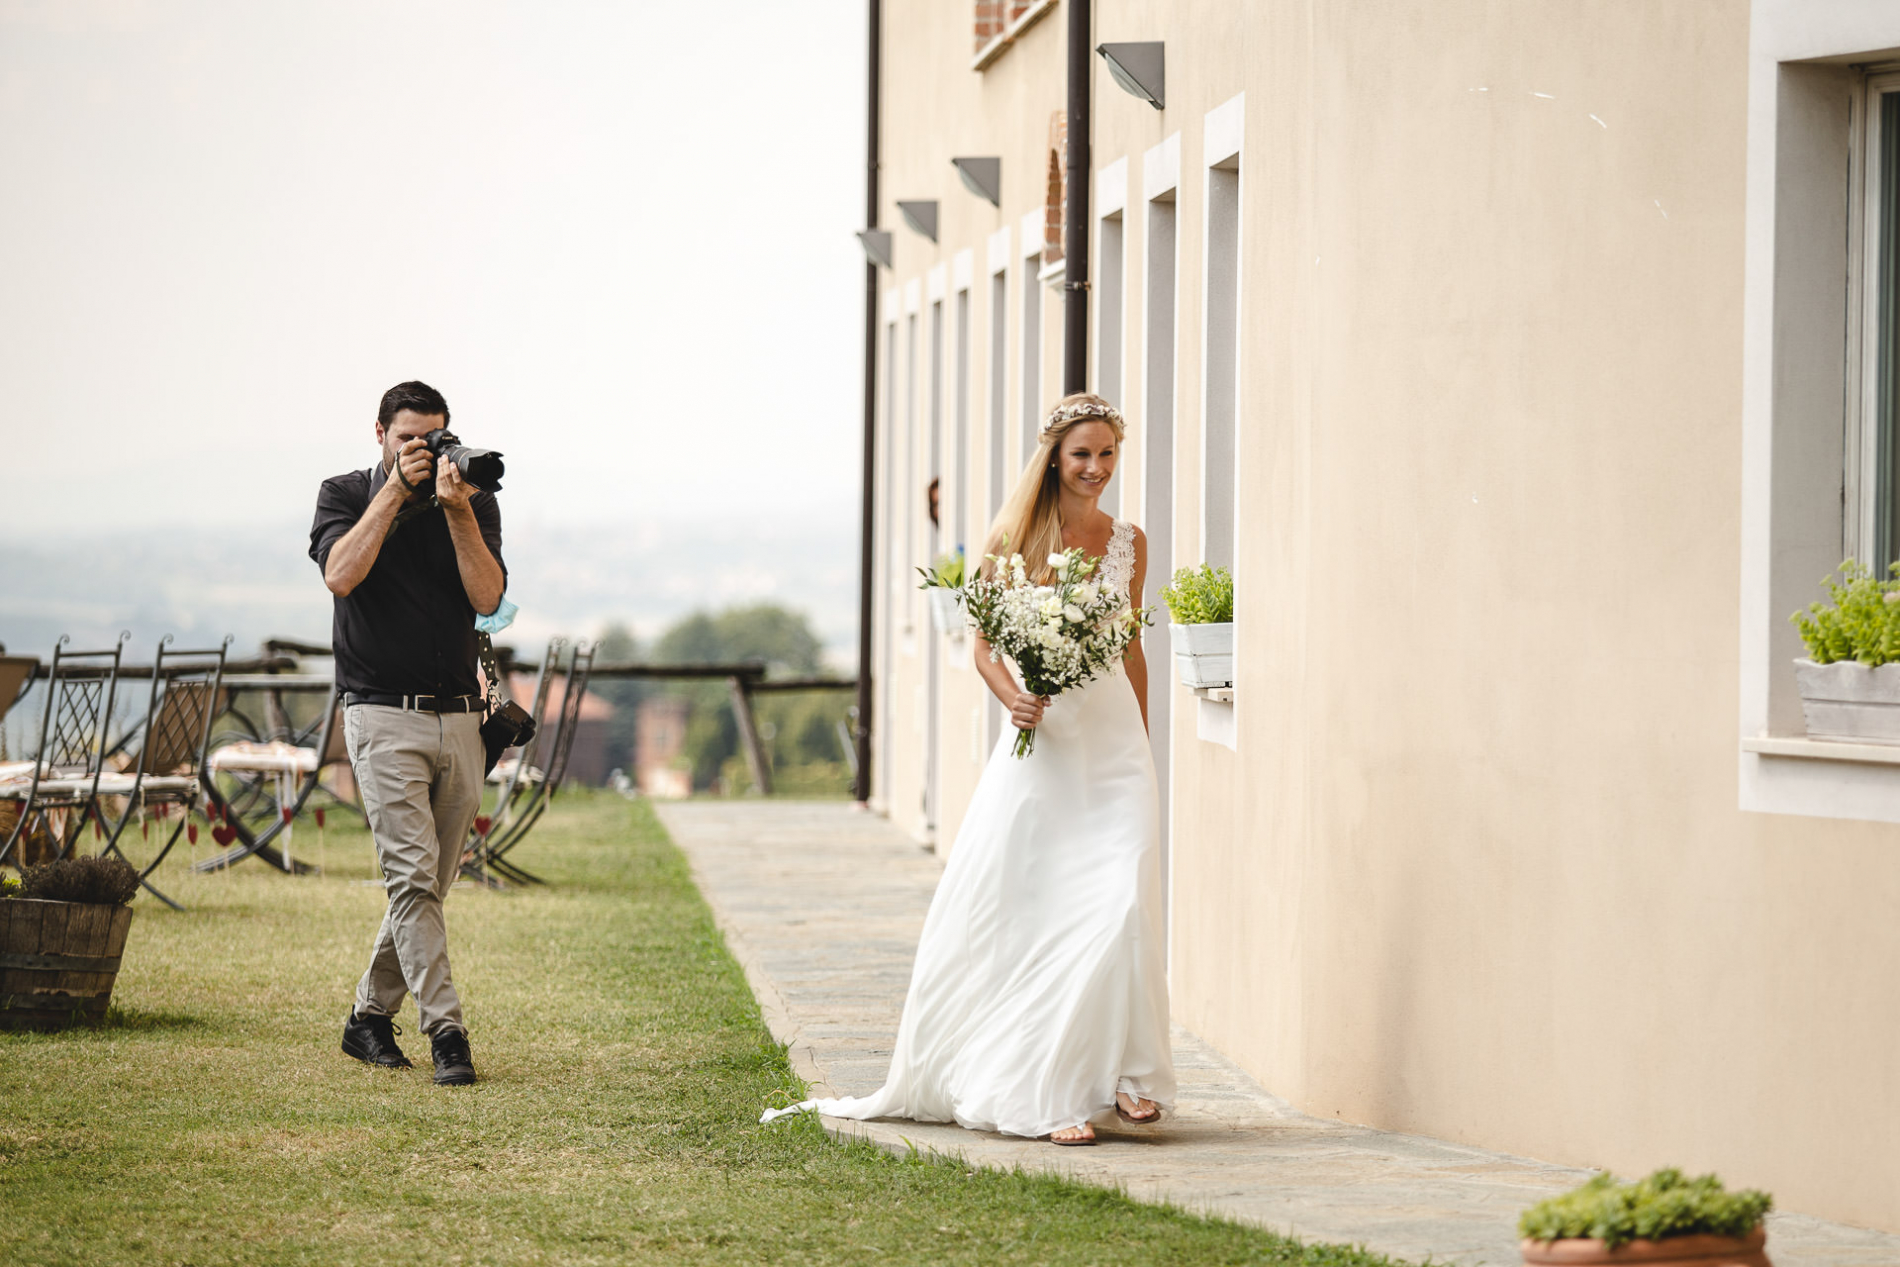 Verbania Verbano-Cusio-Ossola wedding photographer taking pictures of the bride walking at the venue.